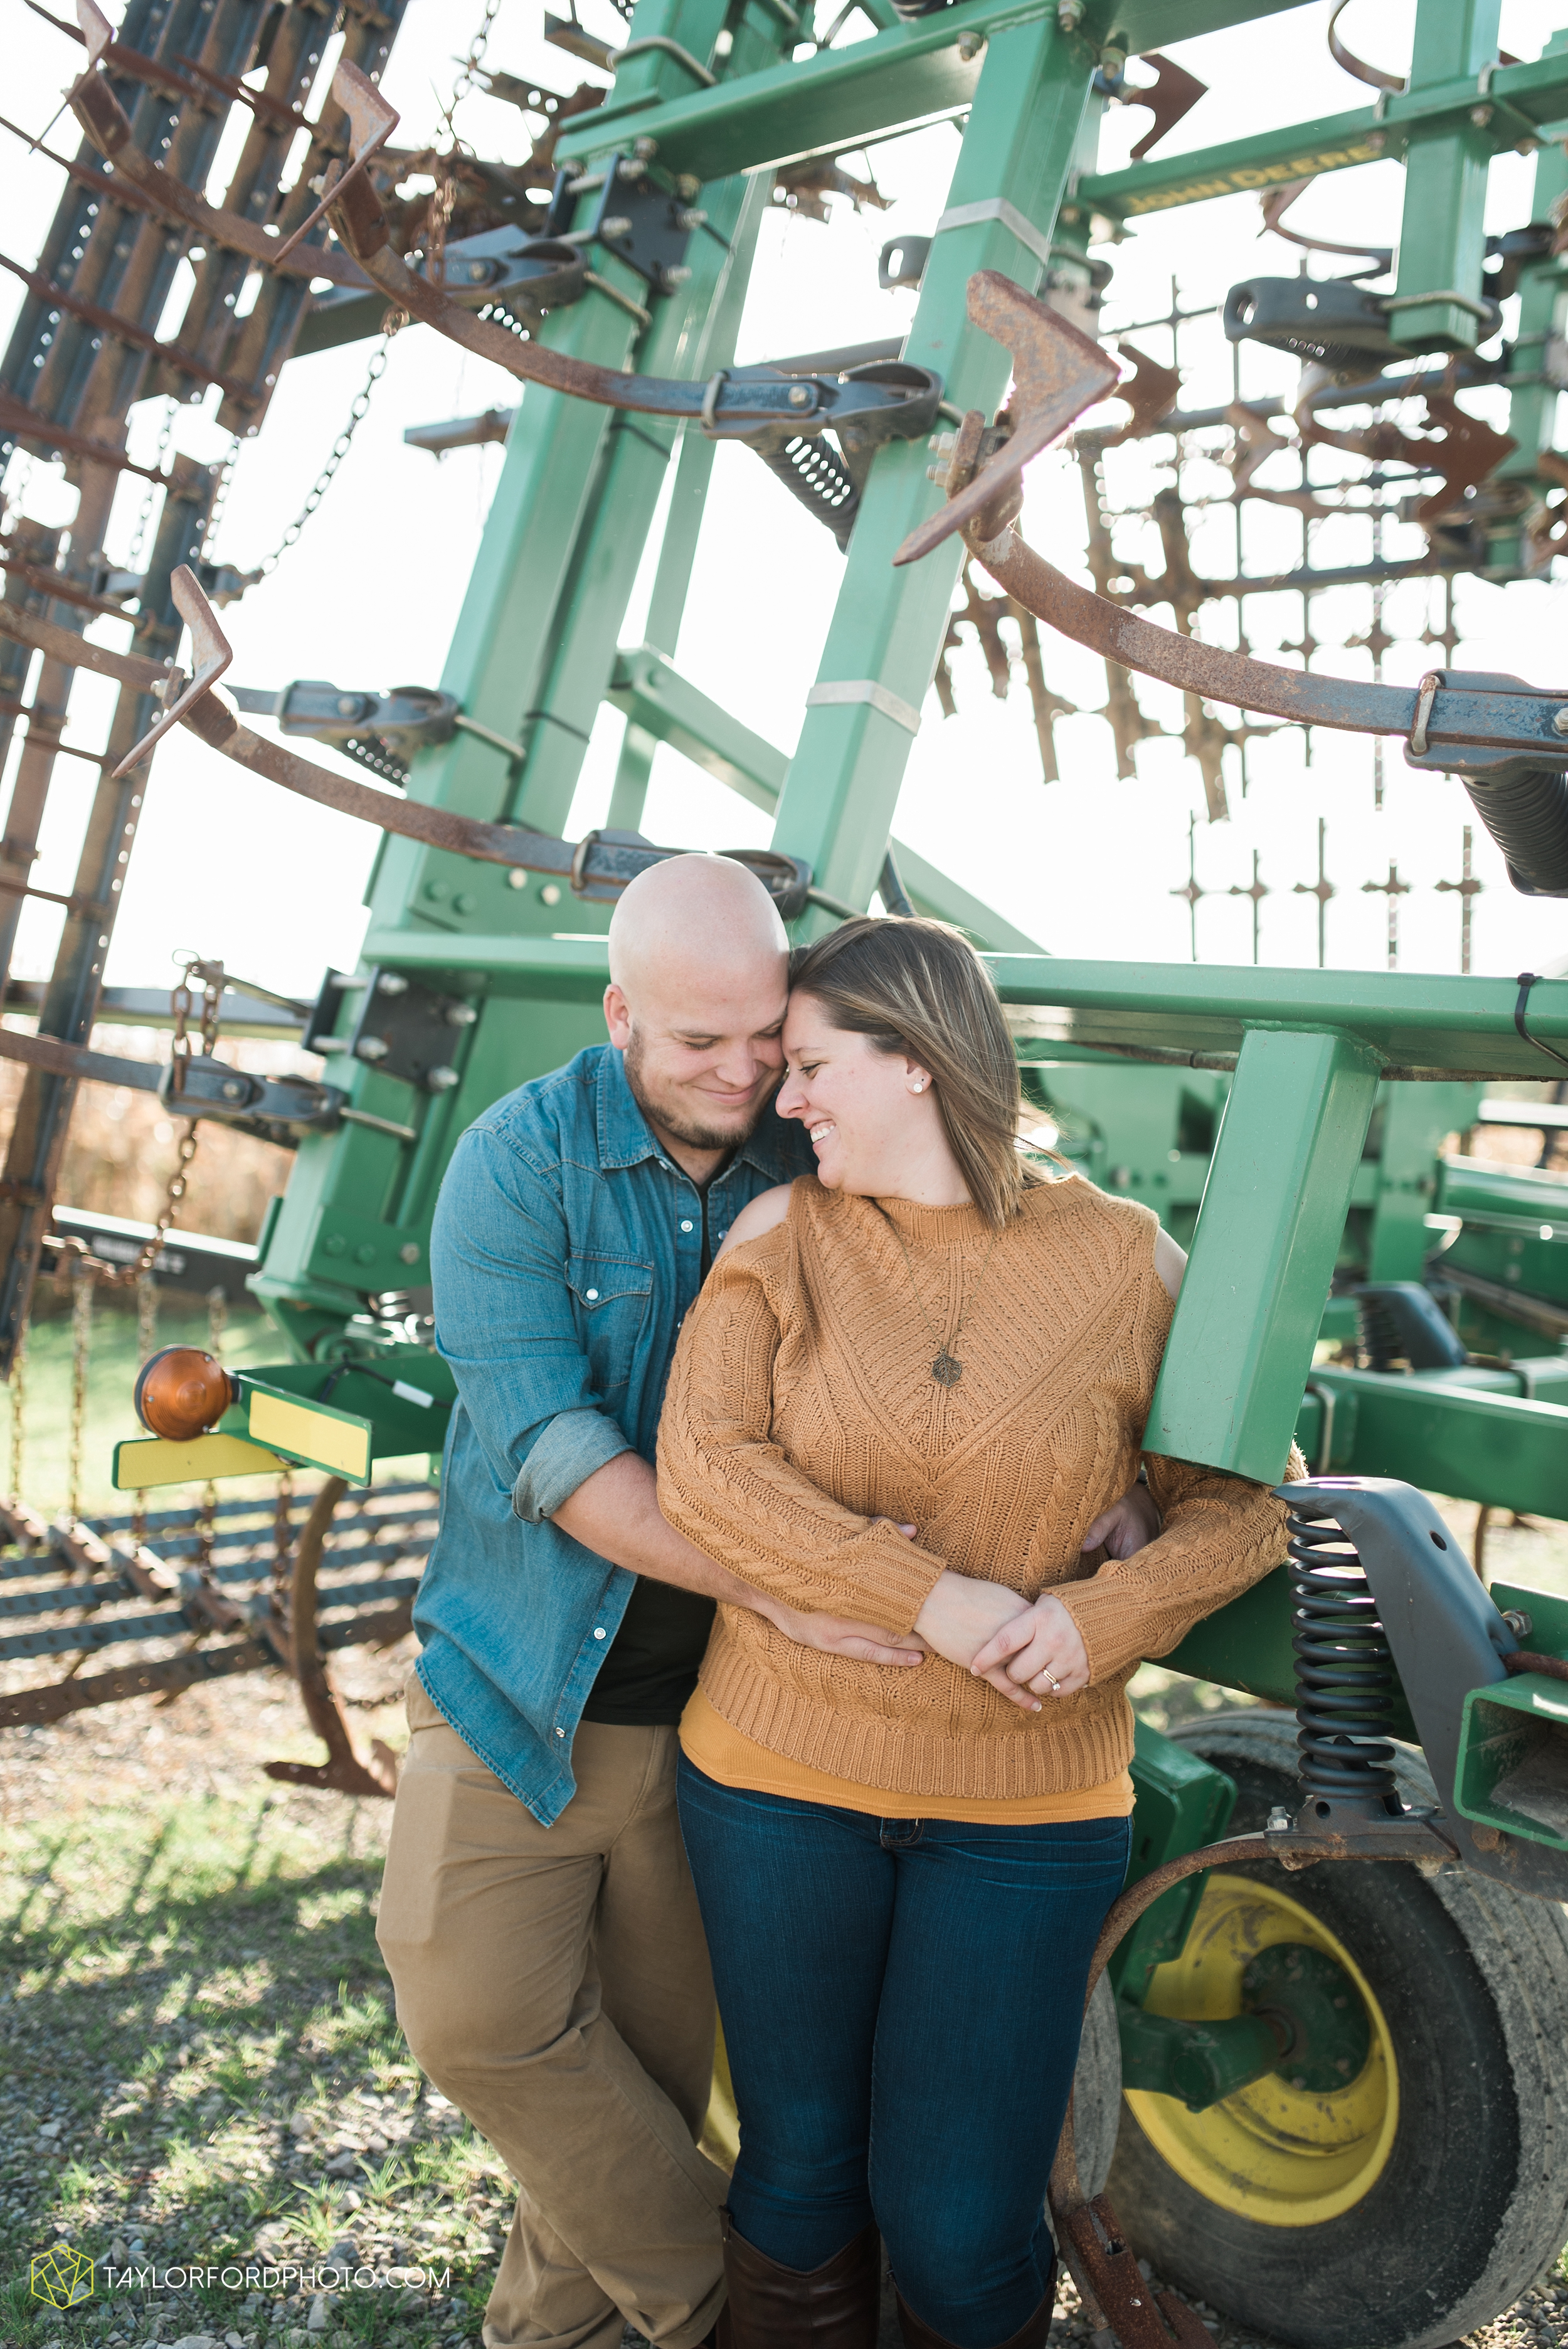 van-wert-ohio-engagement-wedding-photographer-Taylor-Ford-Photography-fall-farm-nature_4141.jpg